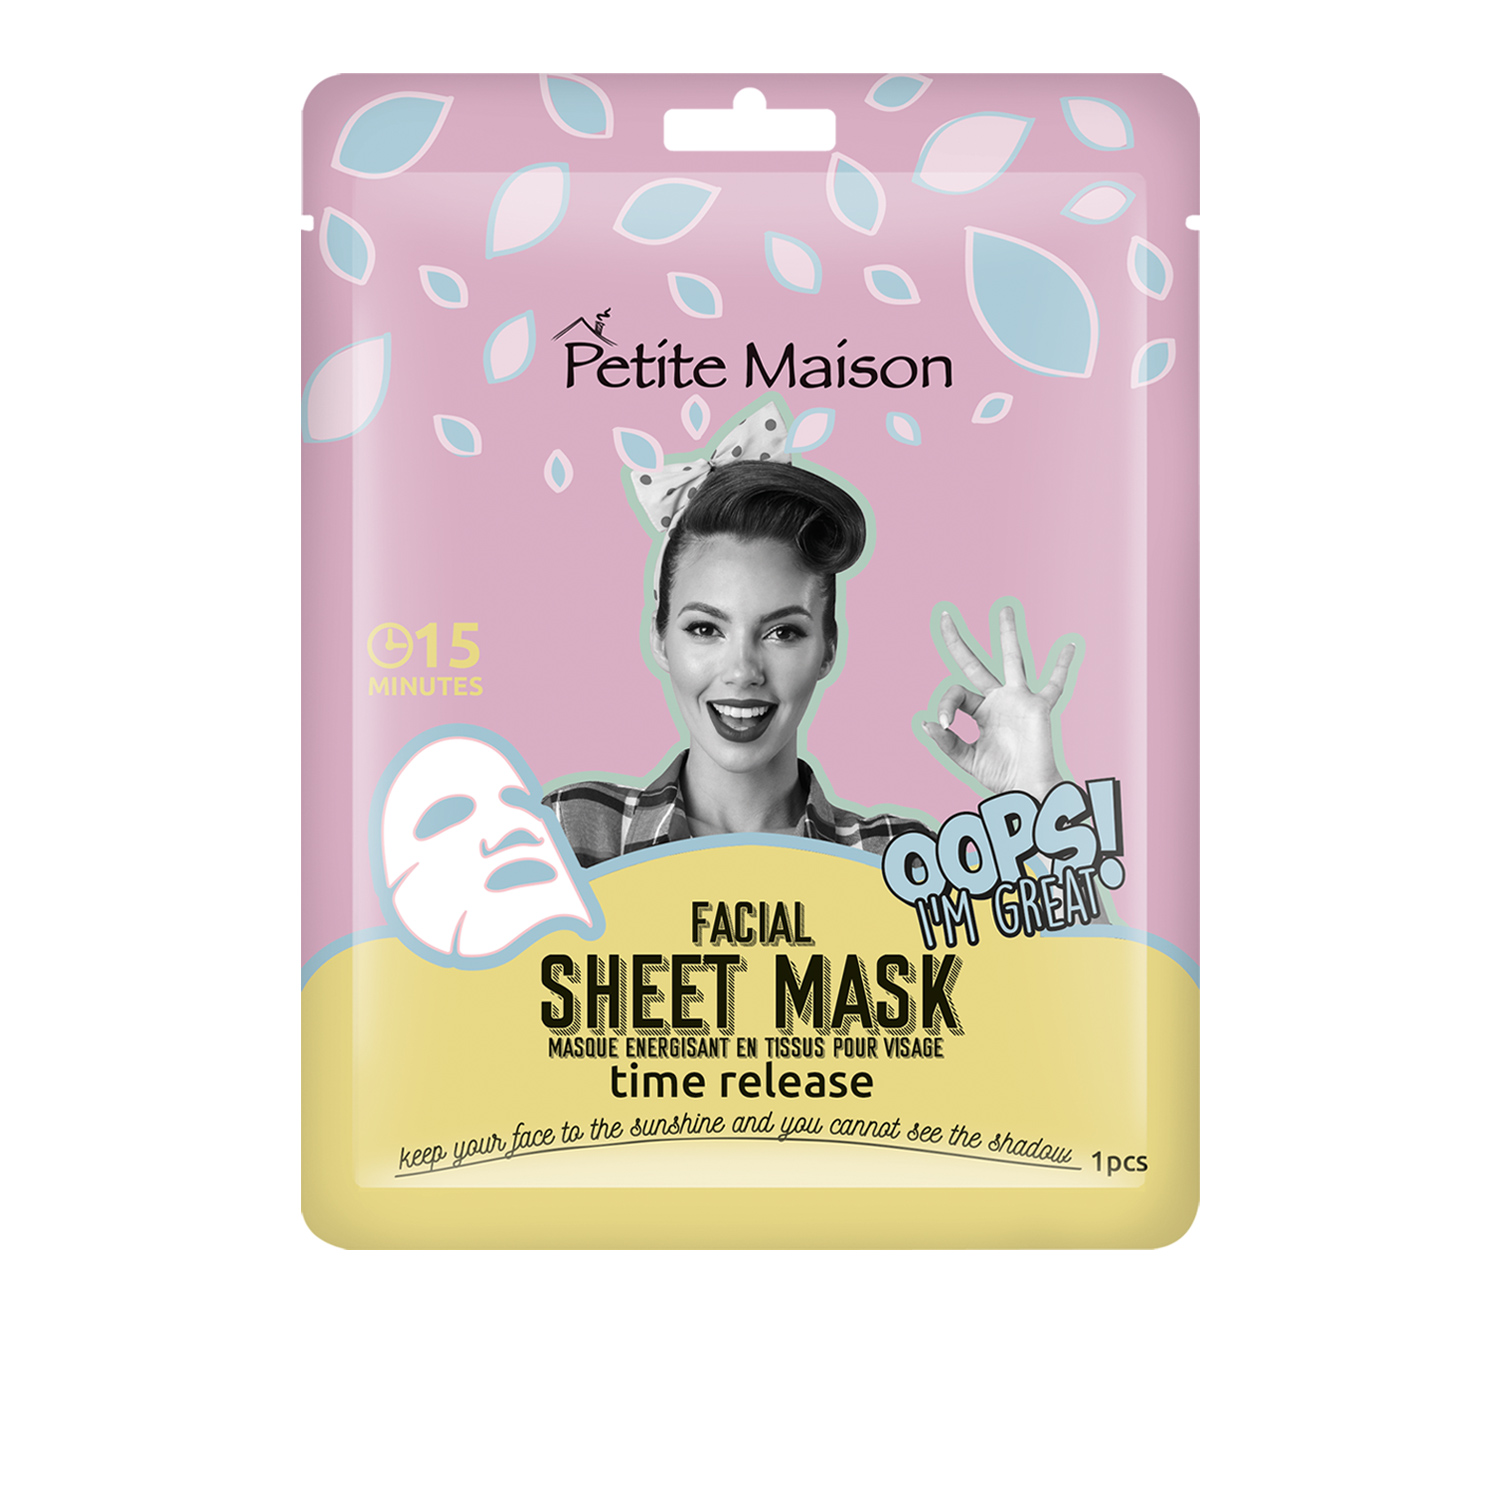 Petite Maison Sheet Mask Time Release